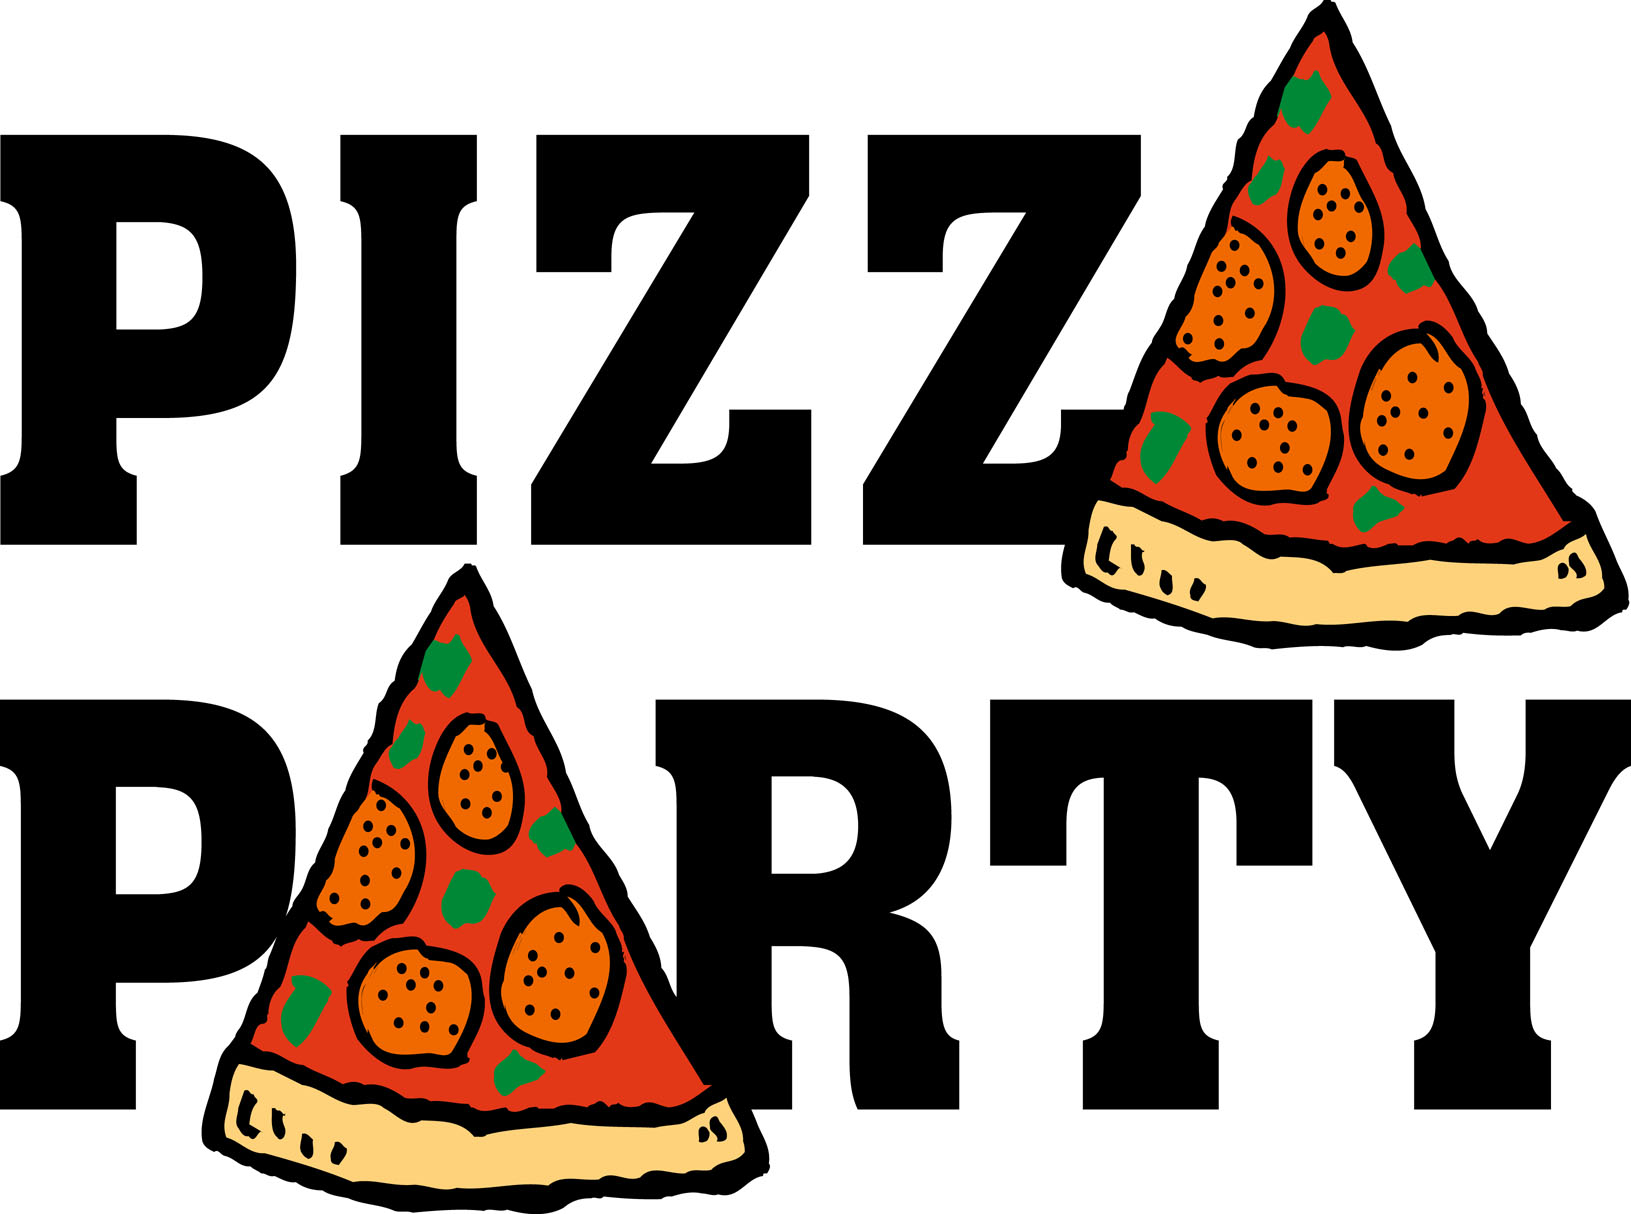 pizza party clipart-pizza party clipart-0